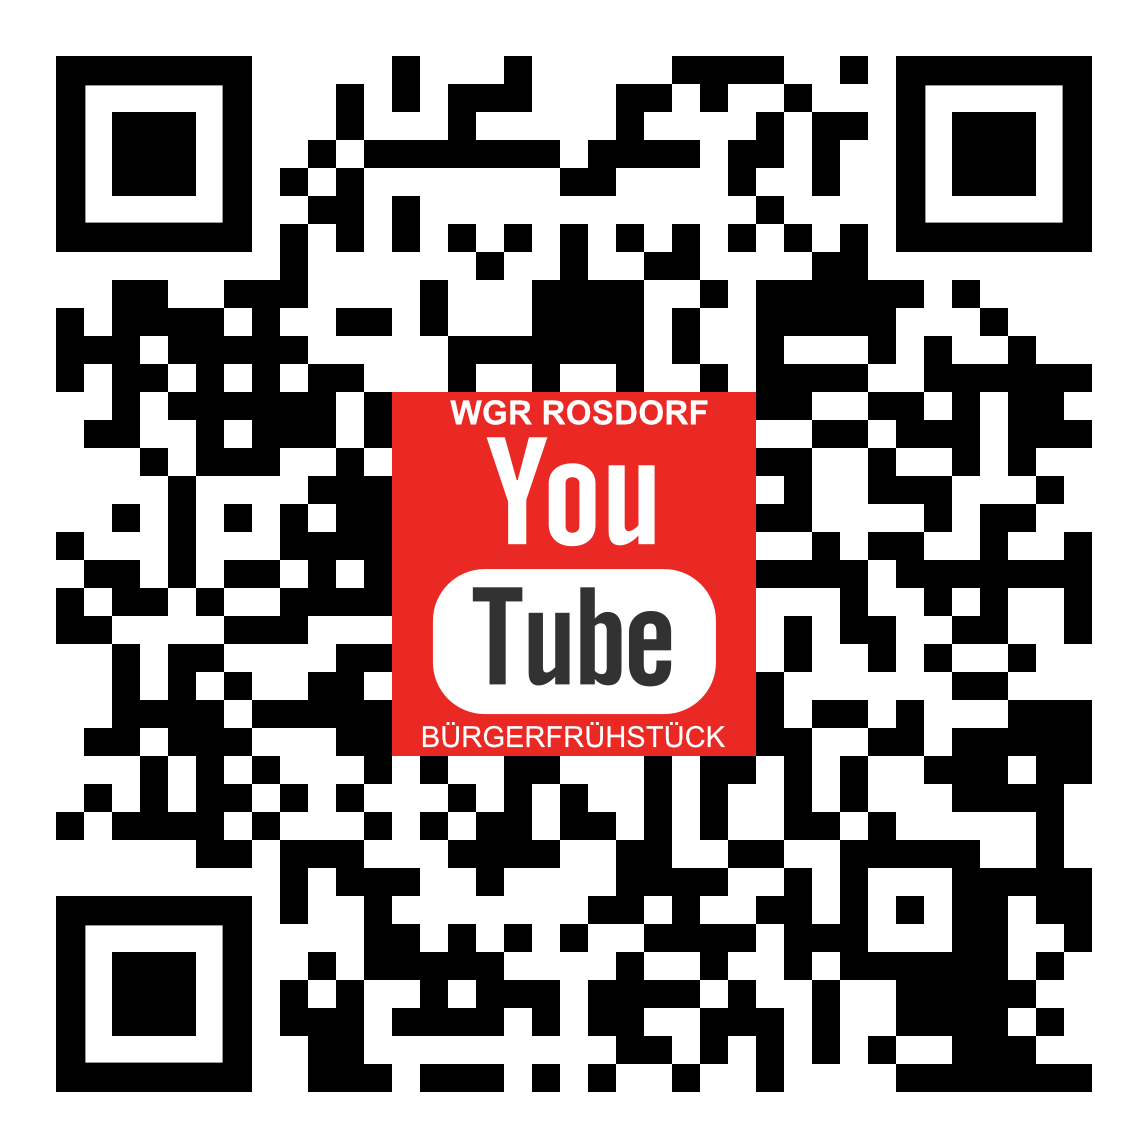 qrcode_wgr_video.png